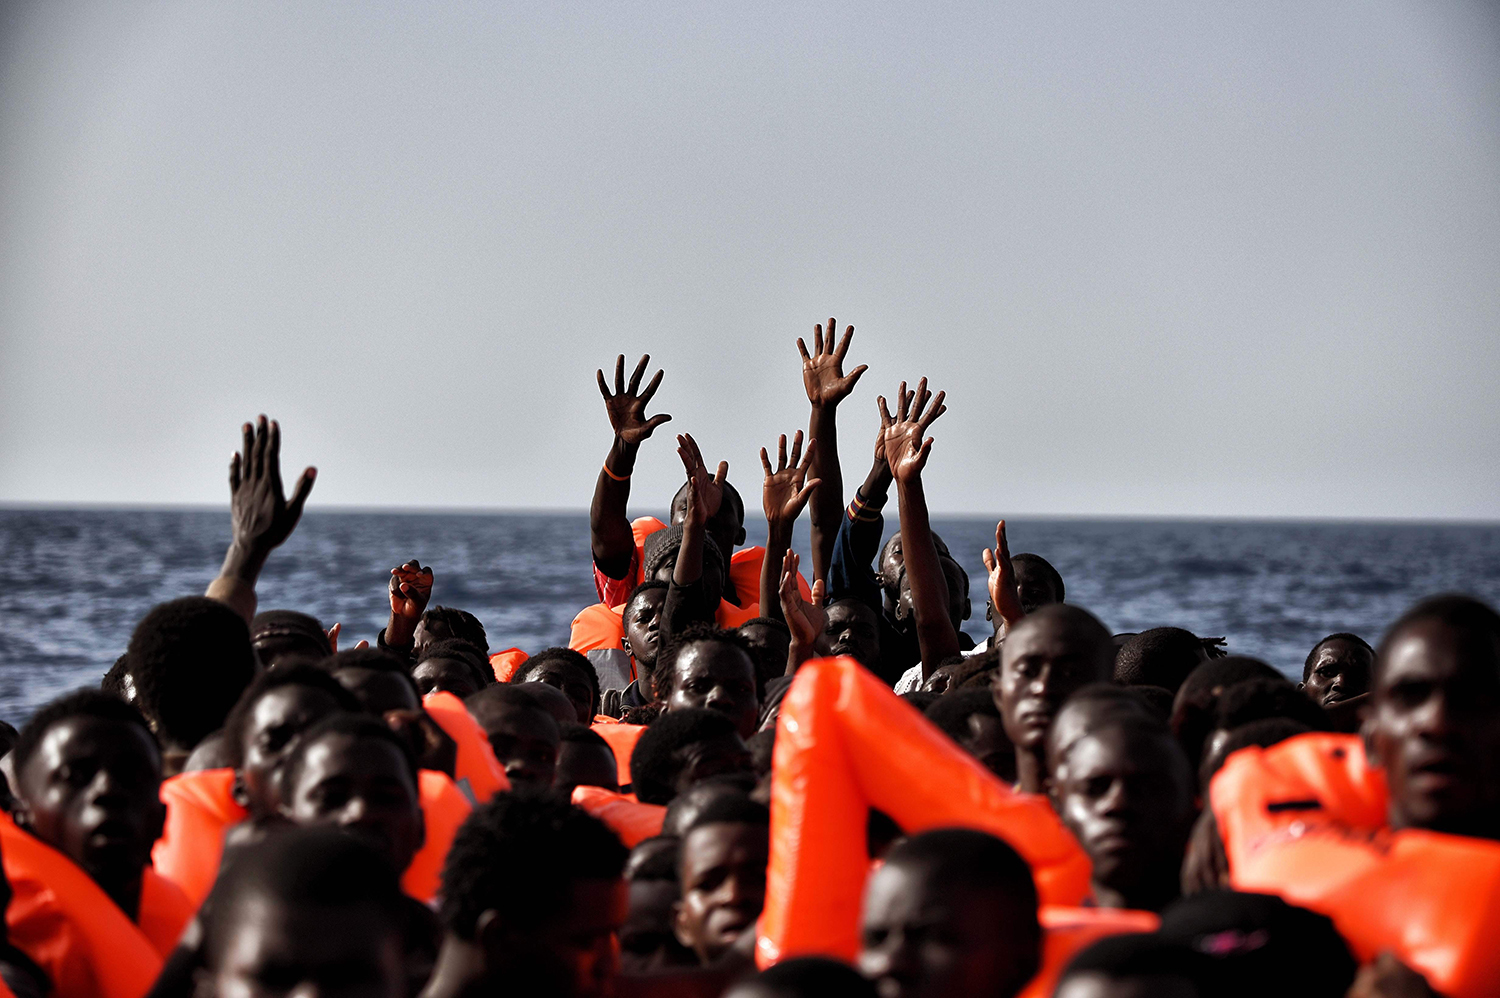 Migrants wait to be rescued in the mediteranean sea some 20 nautical miles north off the coast of Libya on October 3, 2016. / AFP PHOTO / ARIS MESSINIS / TT / kod 444